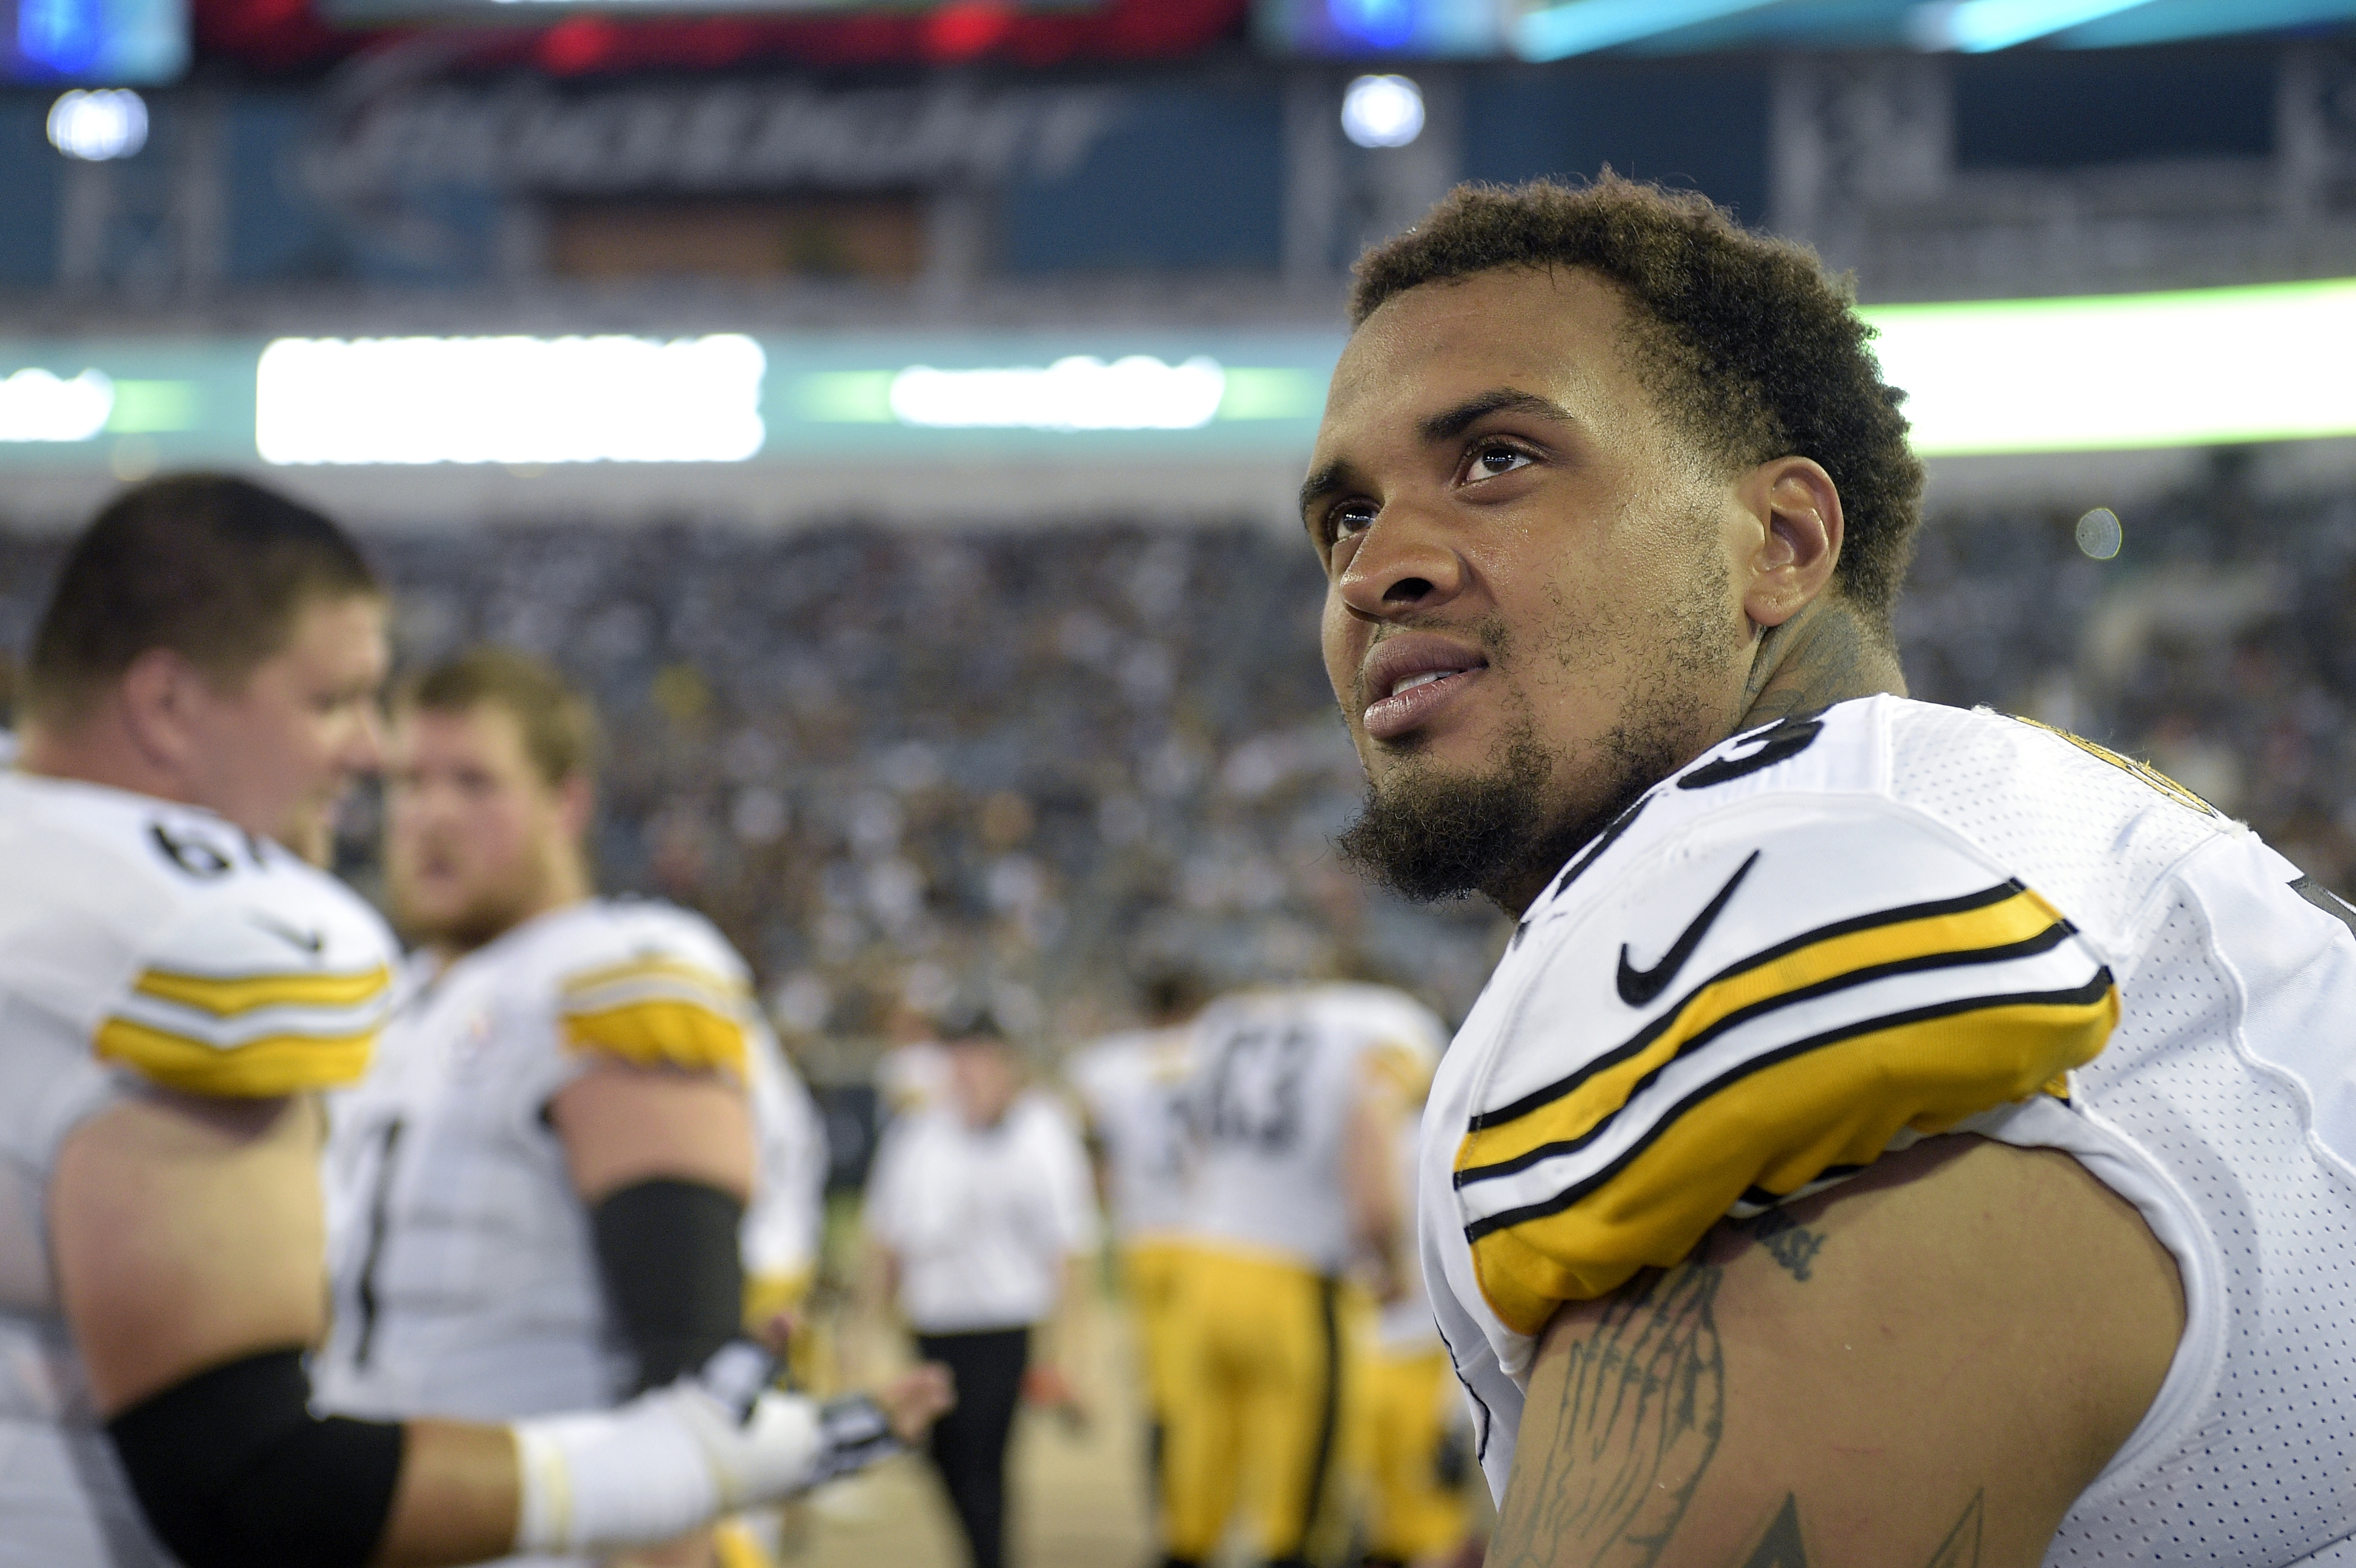 FILE - In this Aug. 14, 2015, file photo, Pittsburgh Steelers center Maurkice Pouncey, right, watches from the bench during the first half of an NFL preseason football game against the Jacksonville Jaguars in Jacksonville, Fla.. (AP Photo/Phelan M. Ebenha